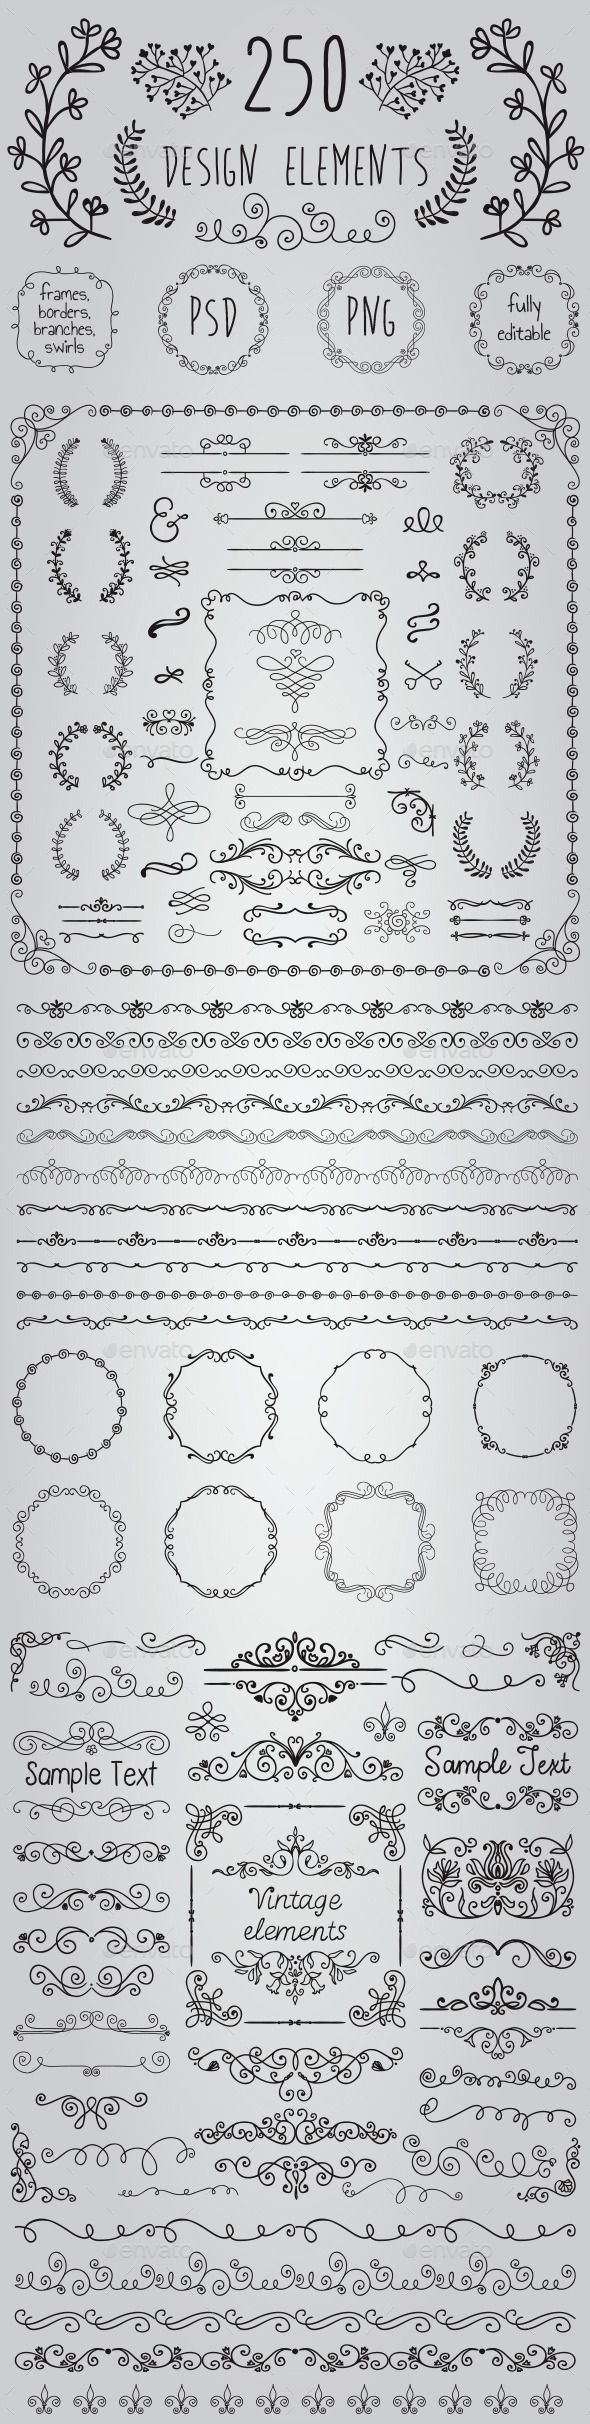 Big Set of 250 Handsketched Design Elements (Transparent PNG, CS, 500x500, 6.9x6.9, banners, black, border, branch, bundle, clipart, congratulation, decoration, drawing, editable, elements, flourish, foliage, foliate, frame, greeting, hand drawn, invitation, laurels, leaves, ornaments, pack, rustic, sketch, wedding)